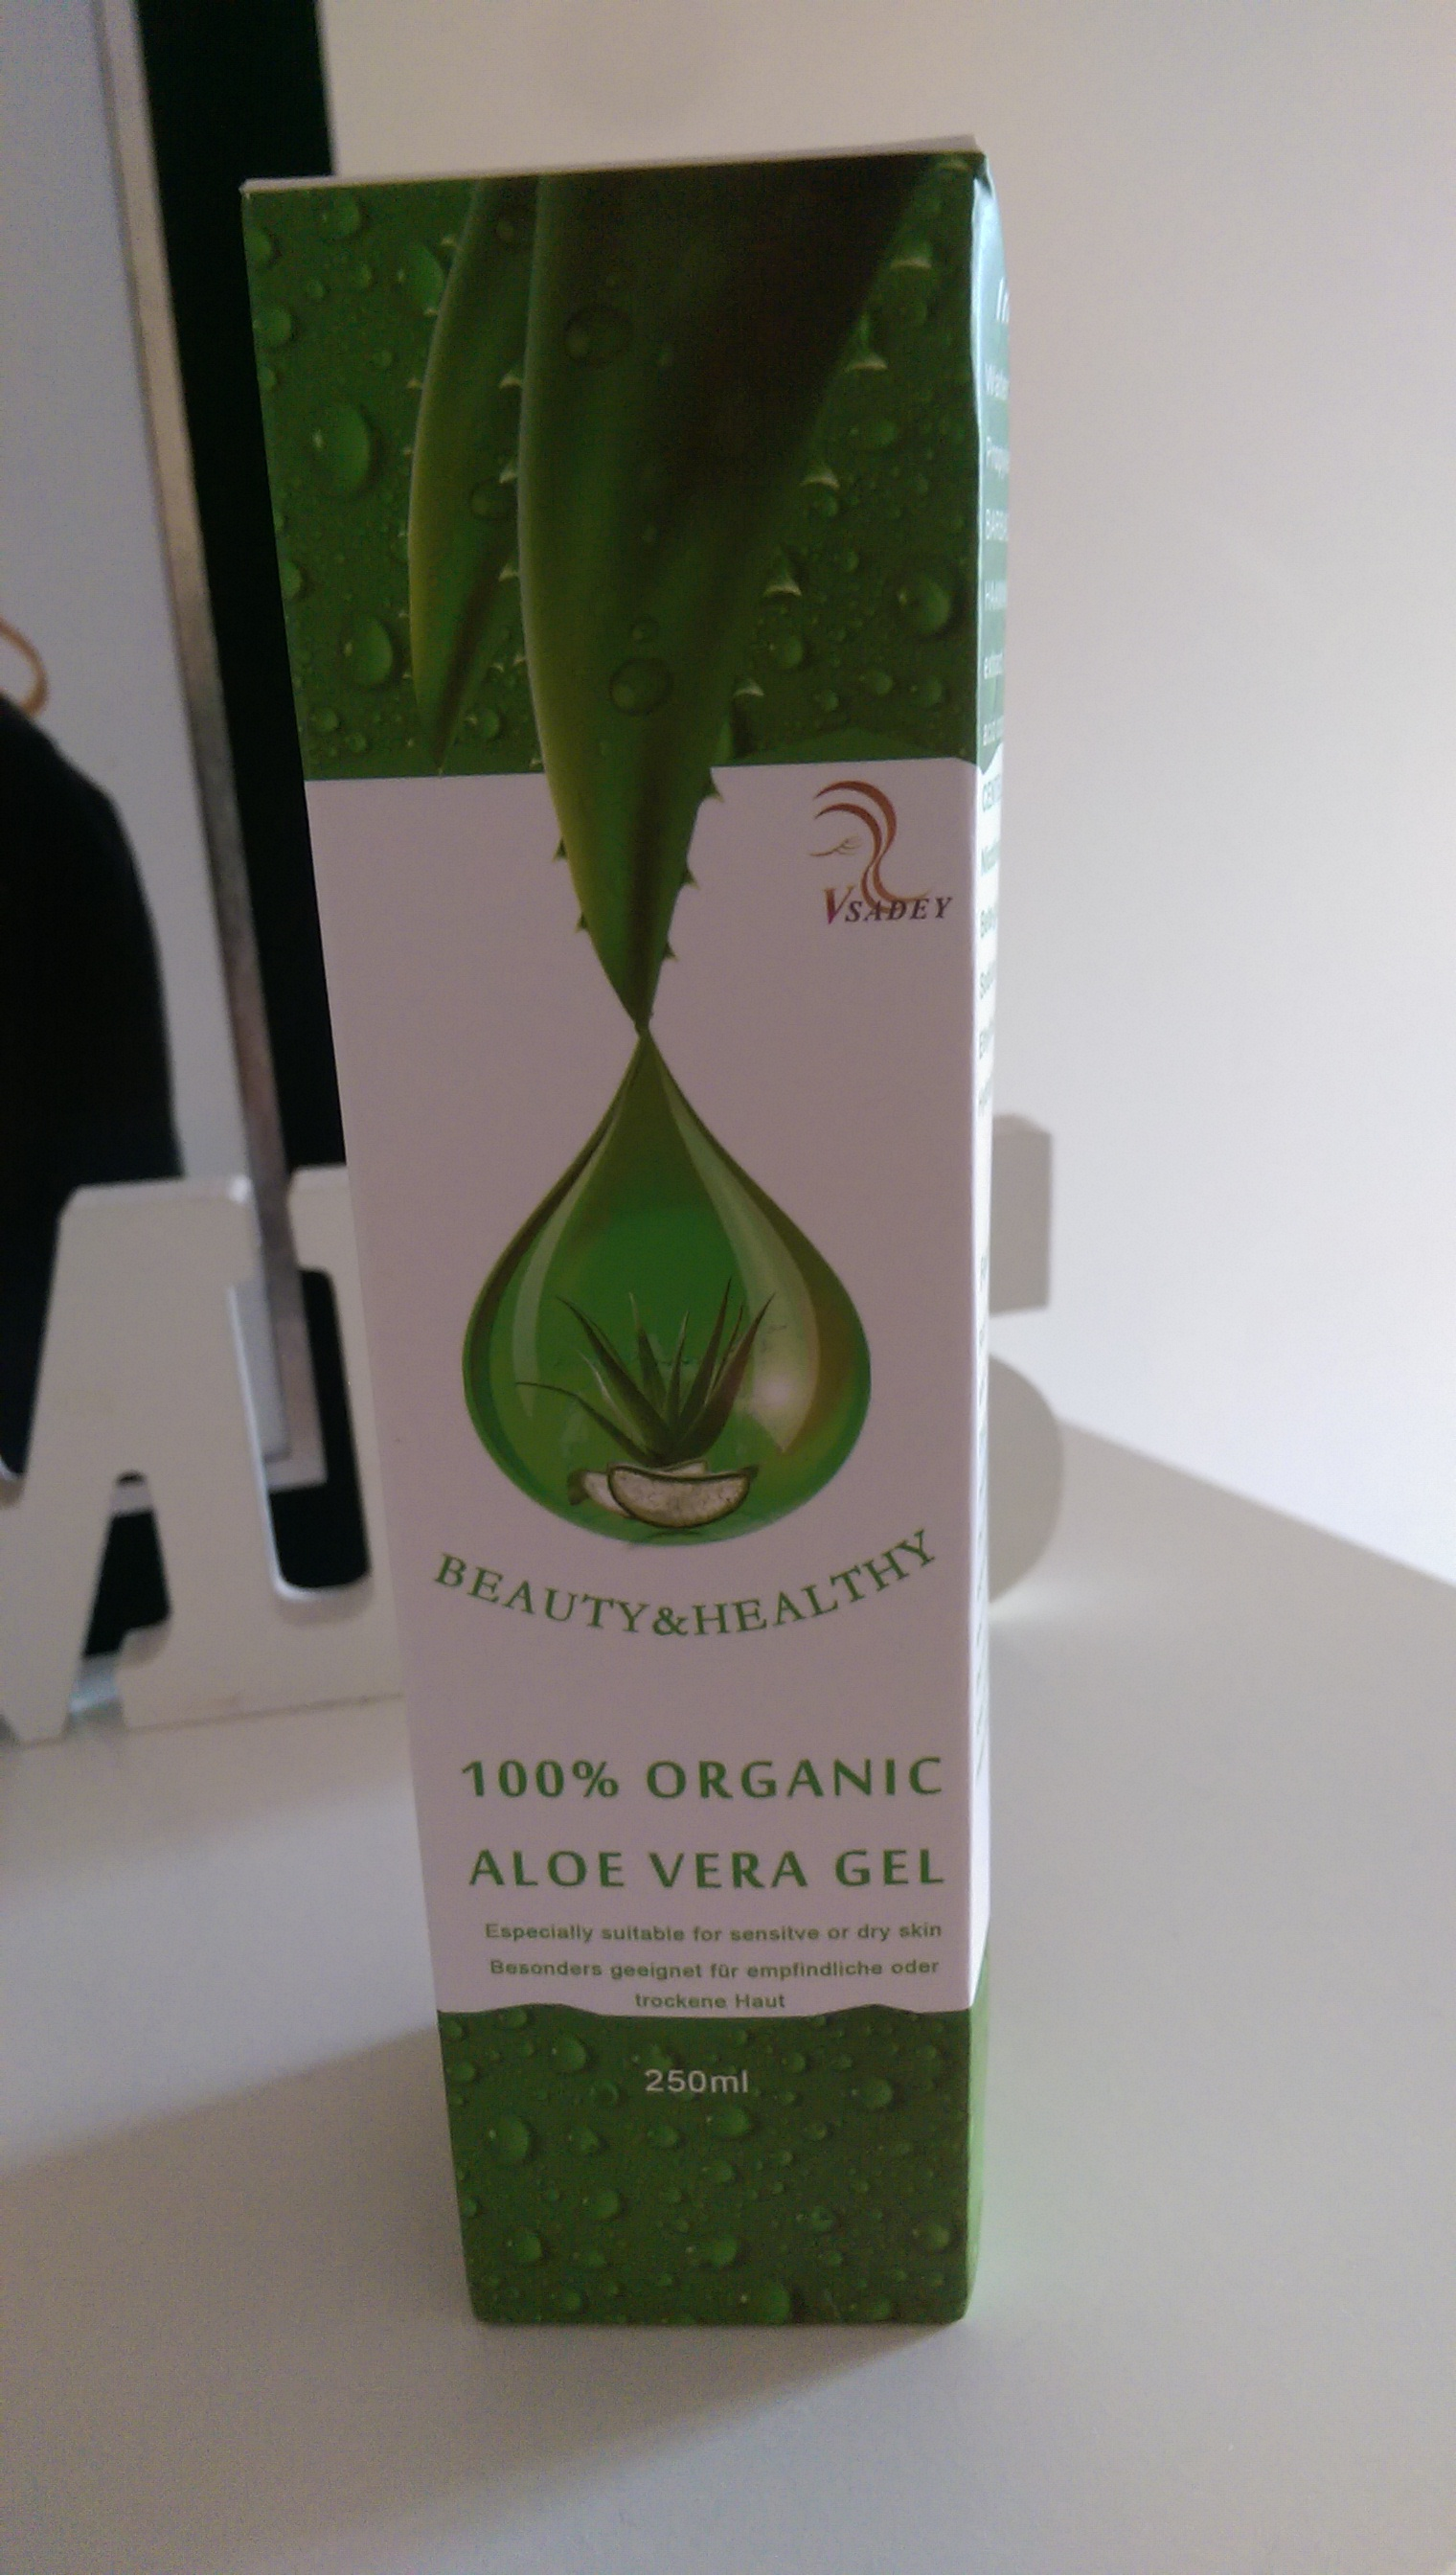 I love this Aloe Vera Gel